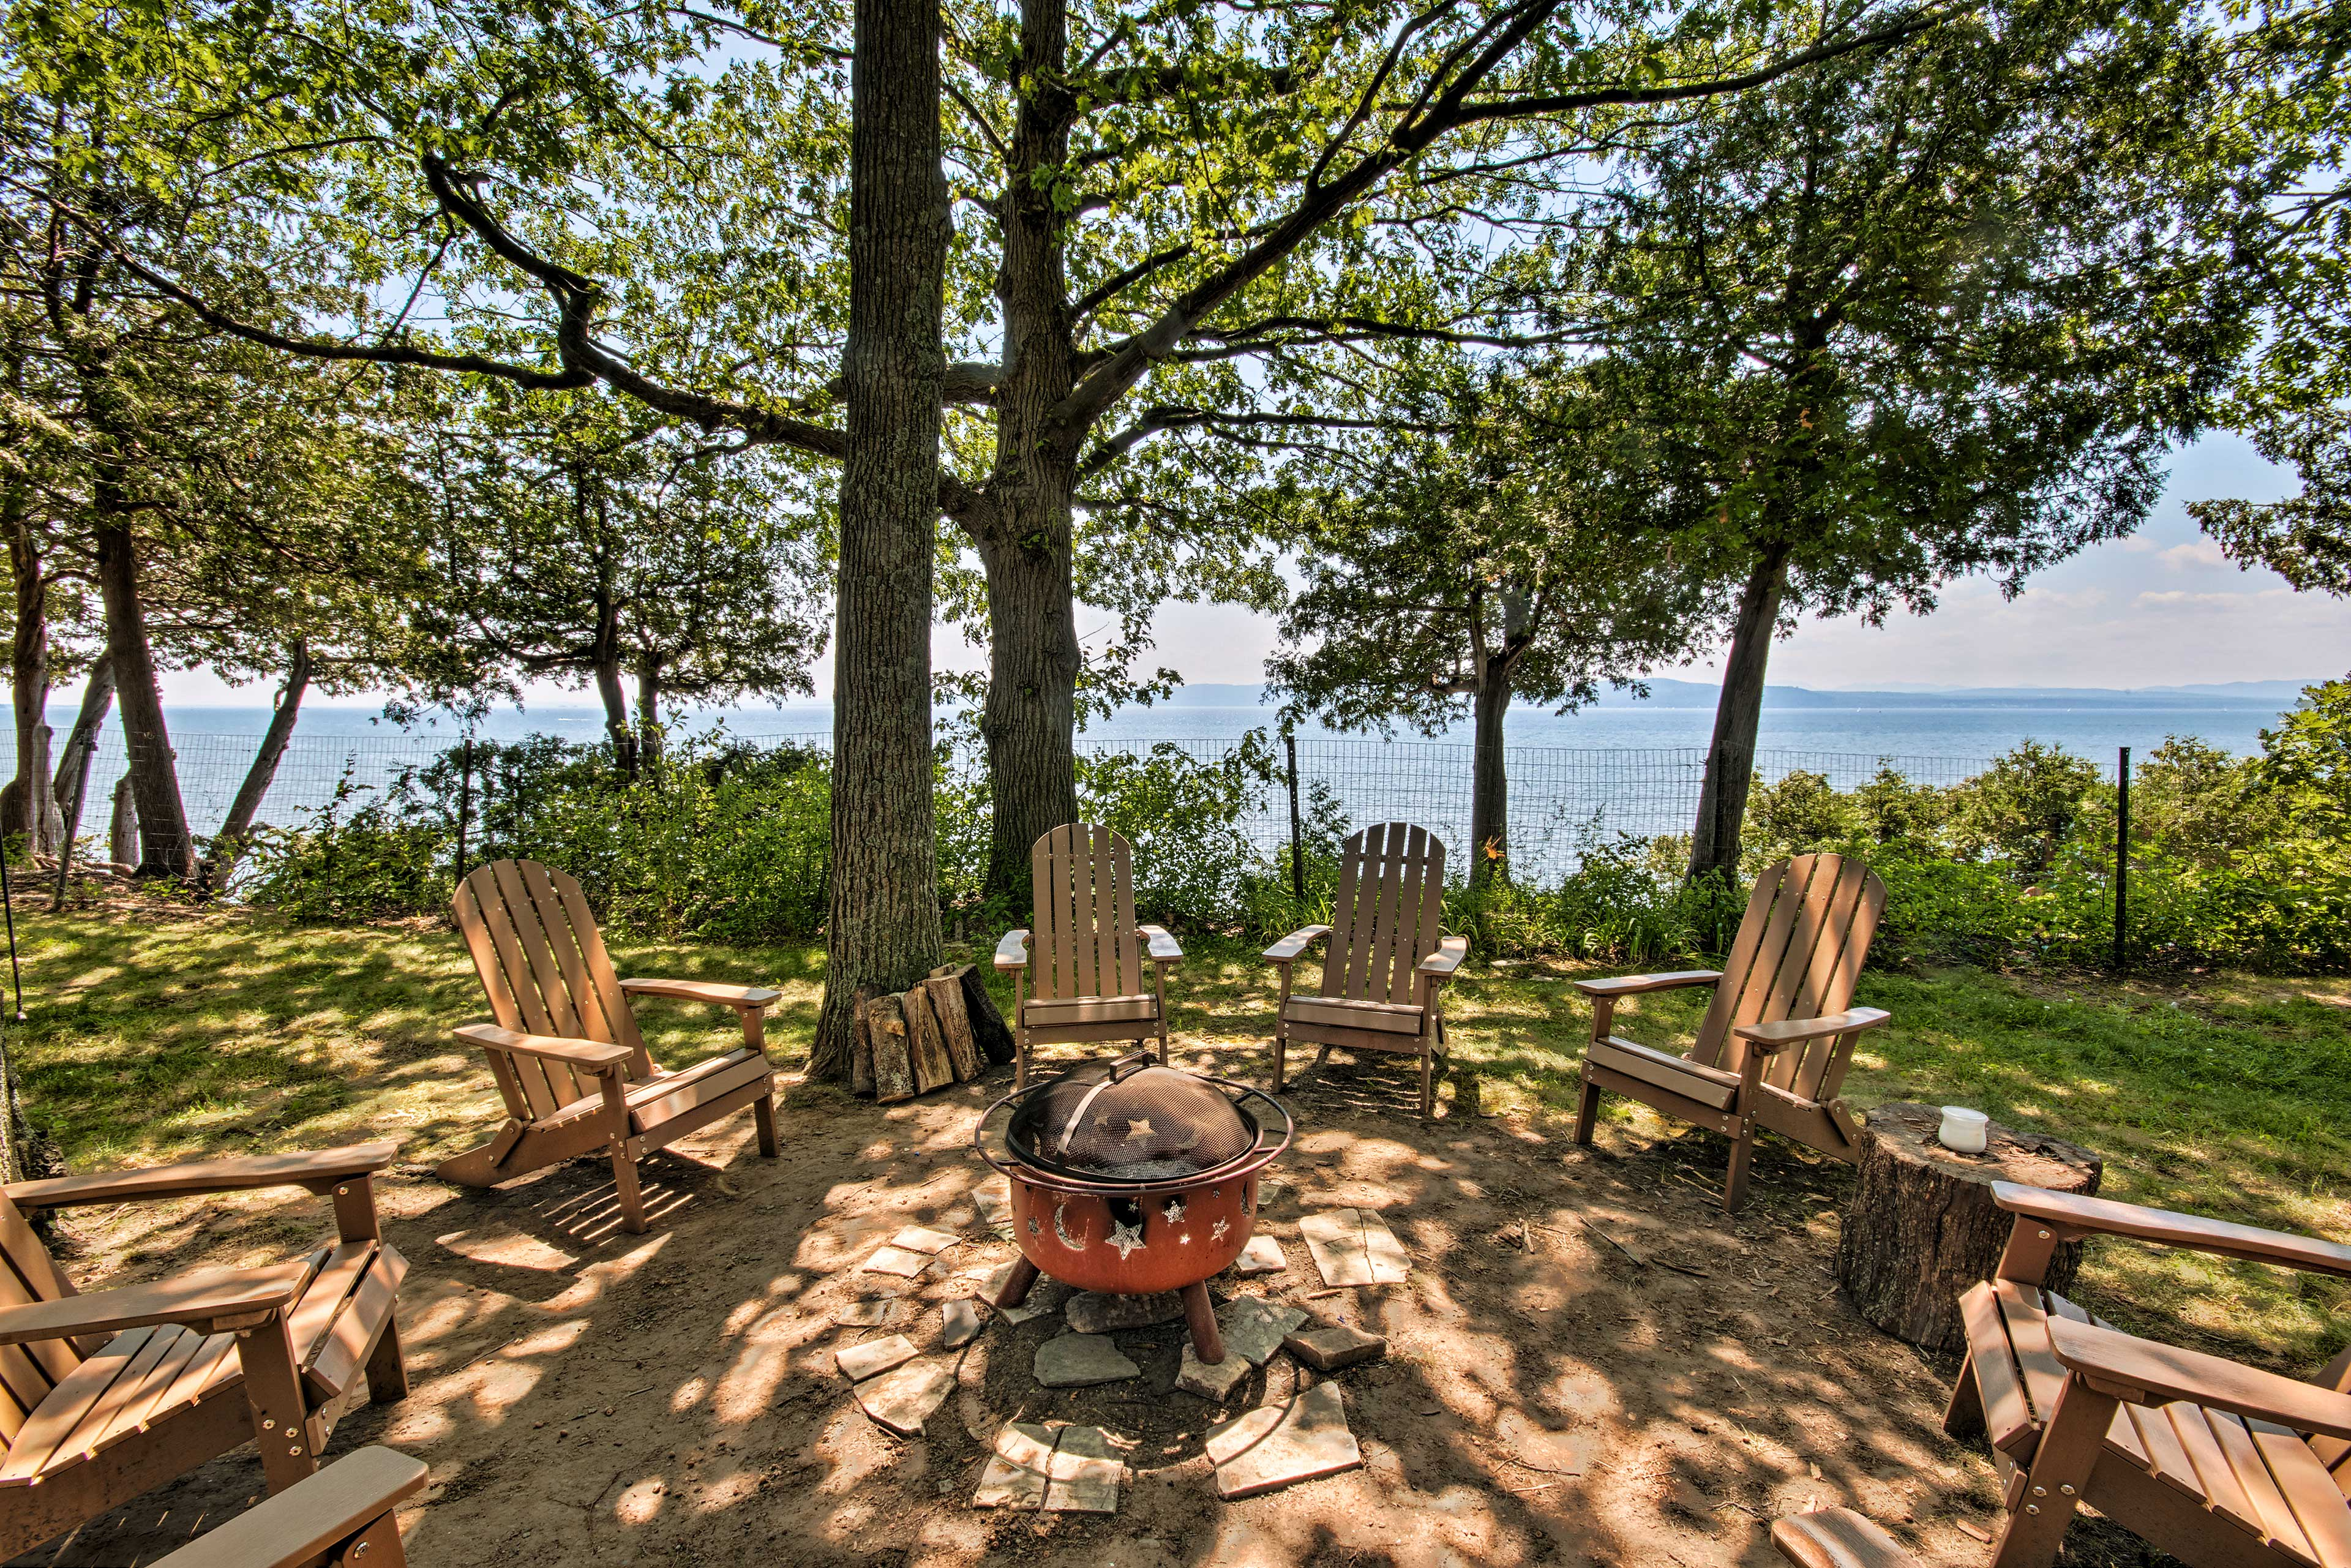 Enjoy conversation and spectacular views from around the fire pit!